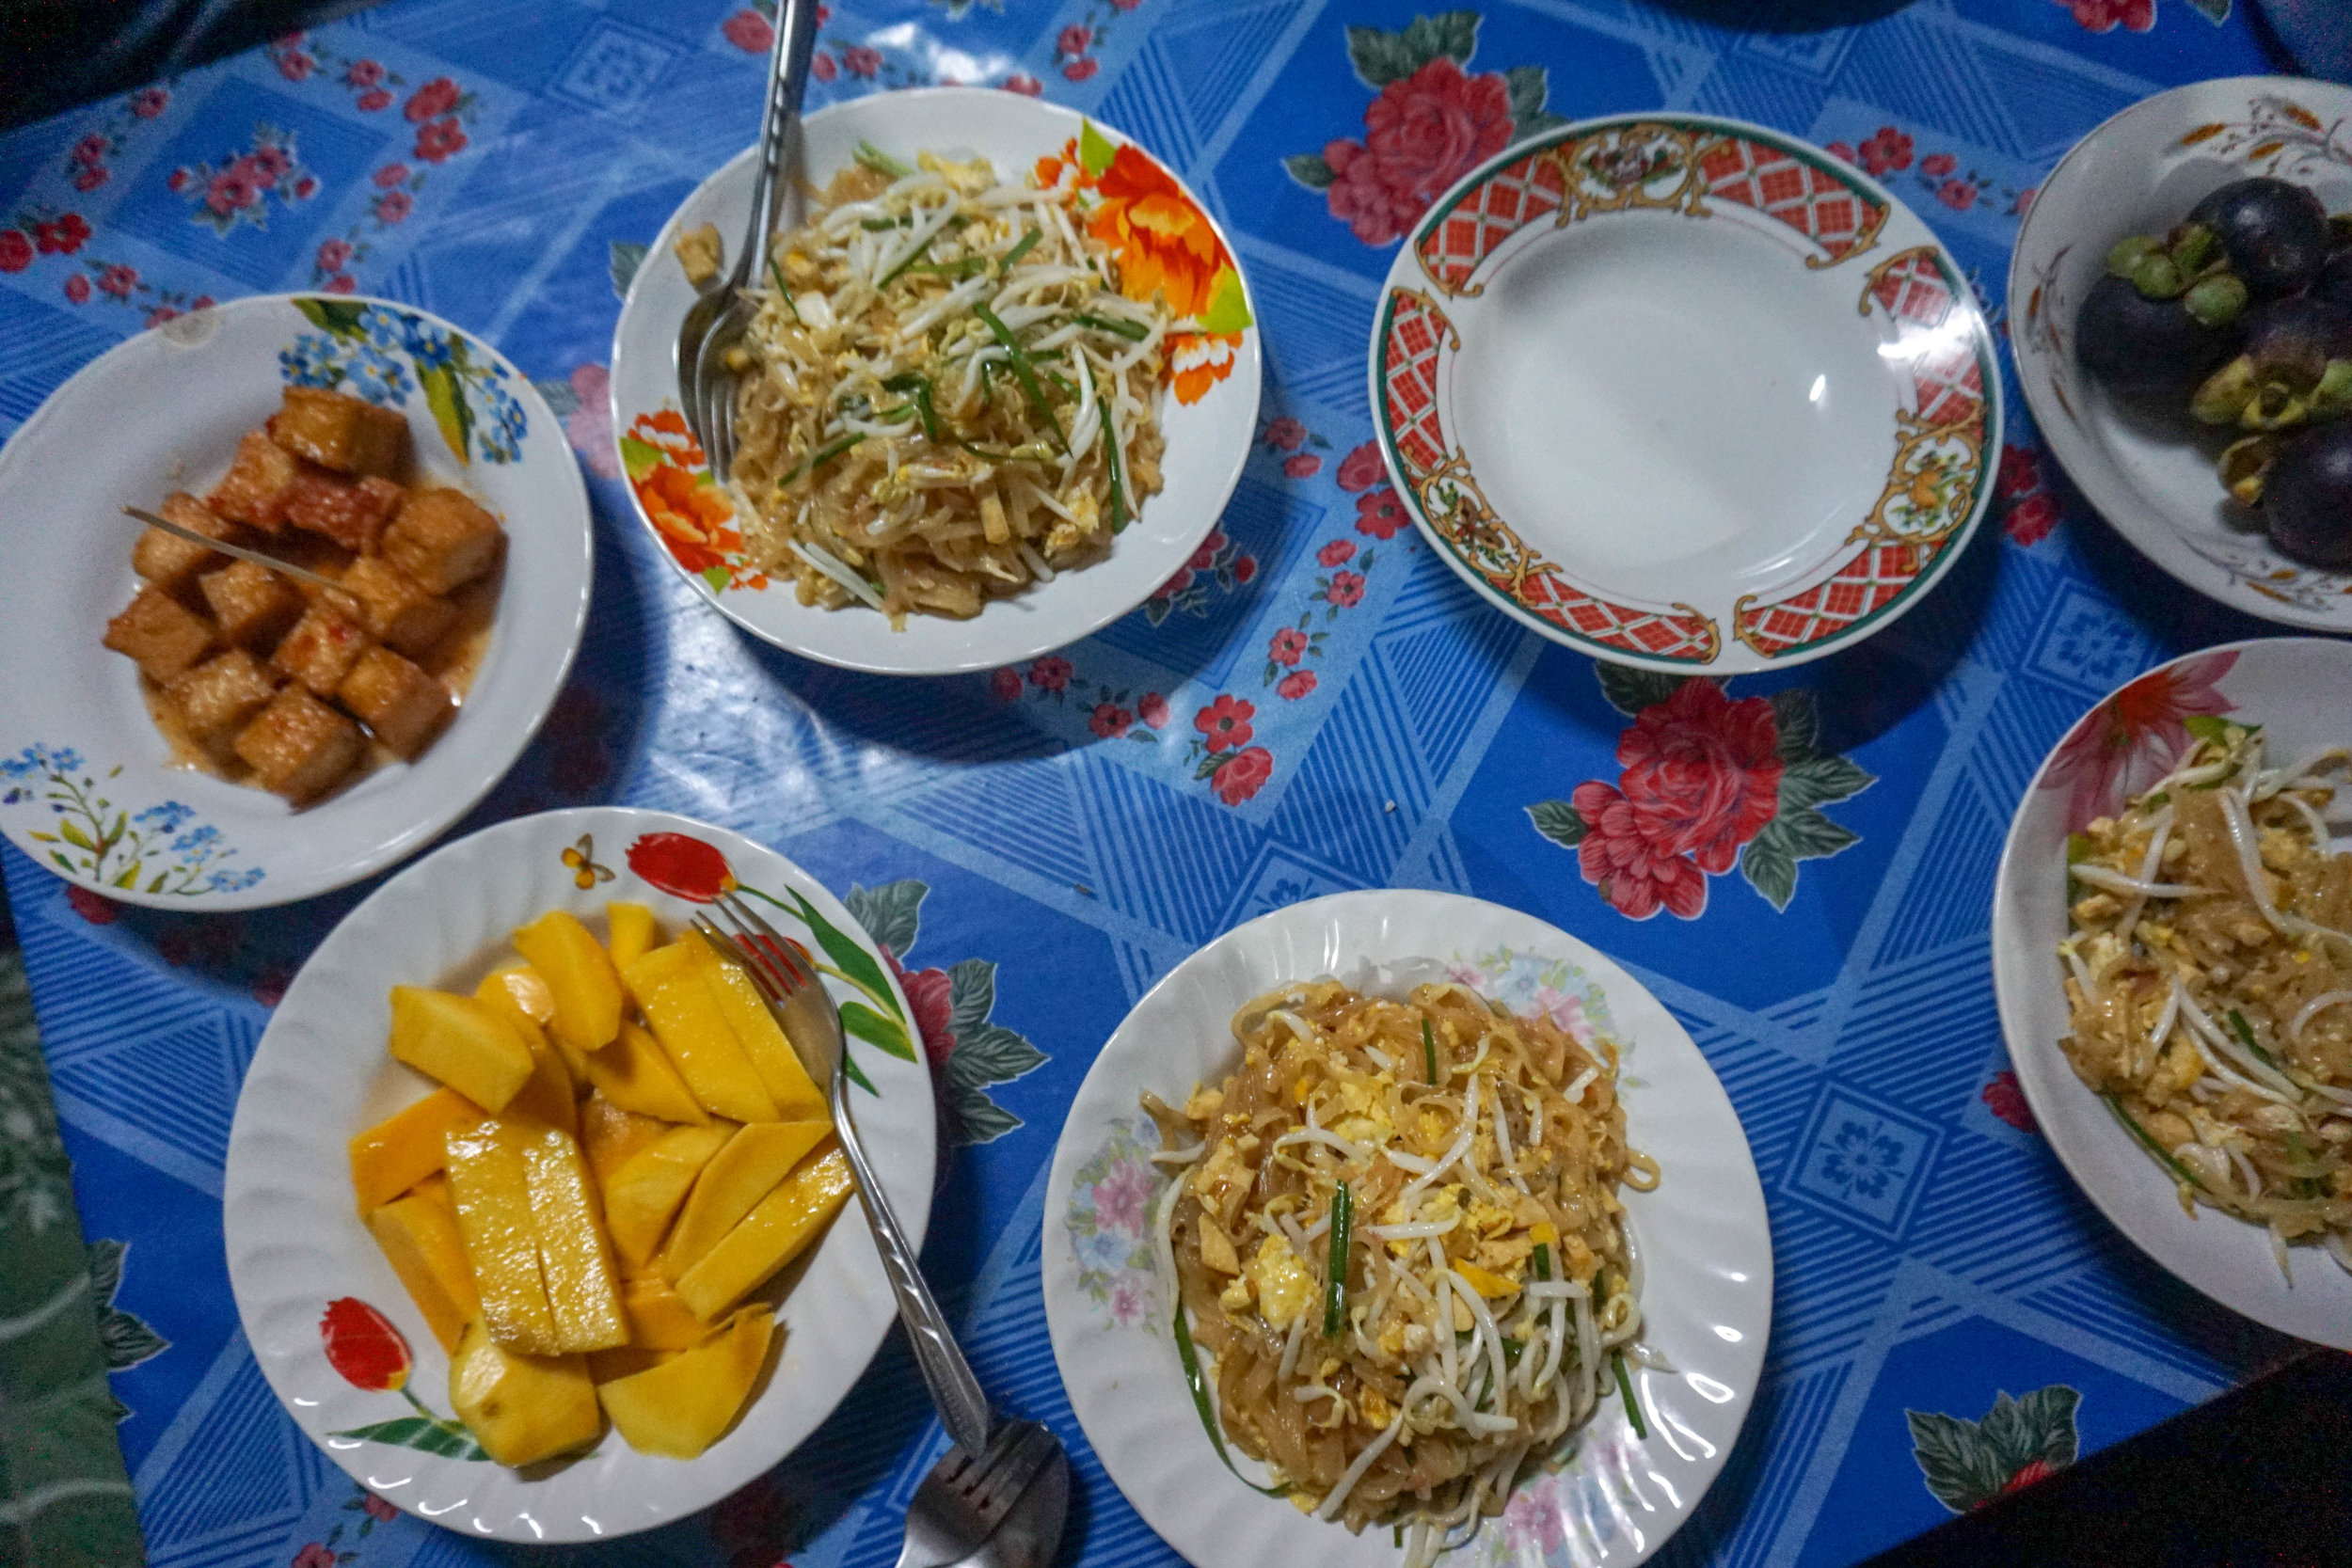 Khao_soi_cooking_course.jpg